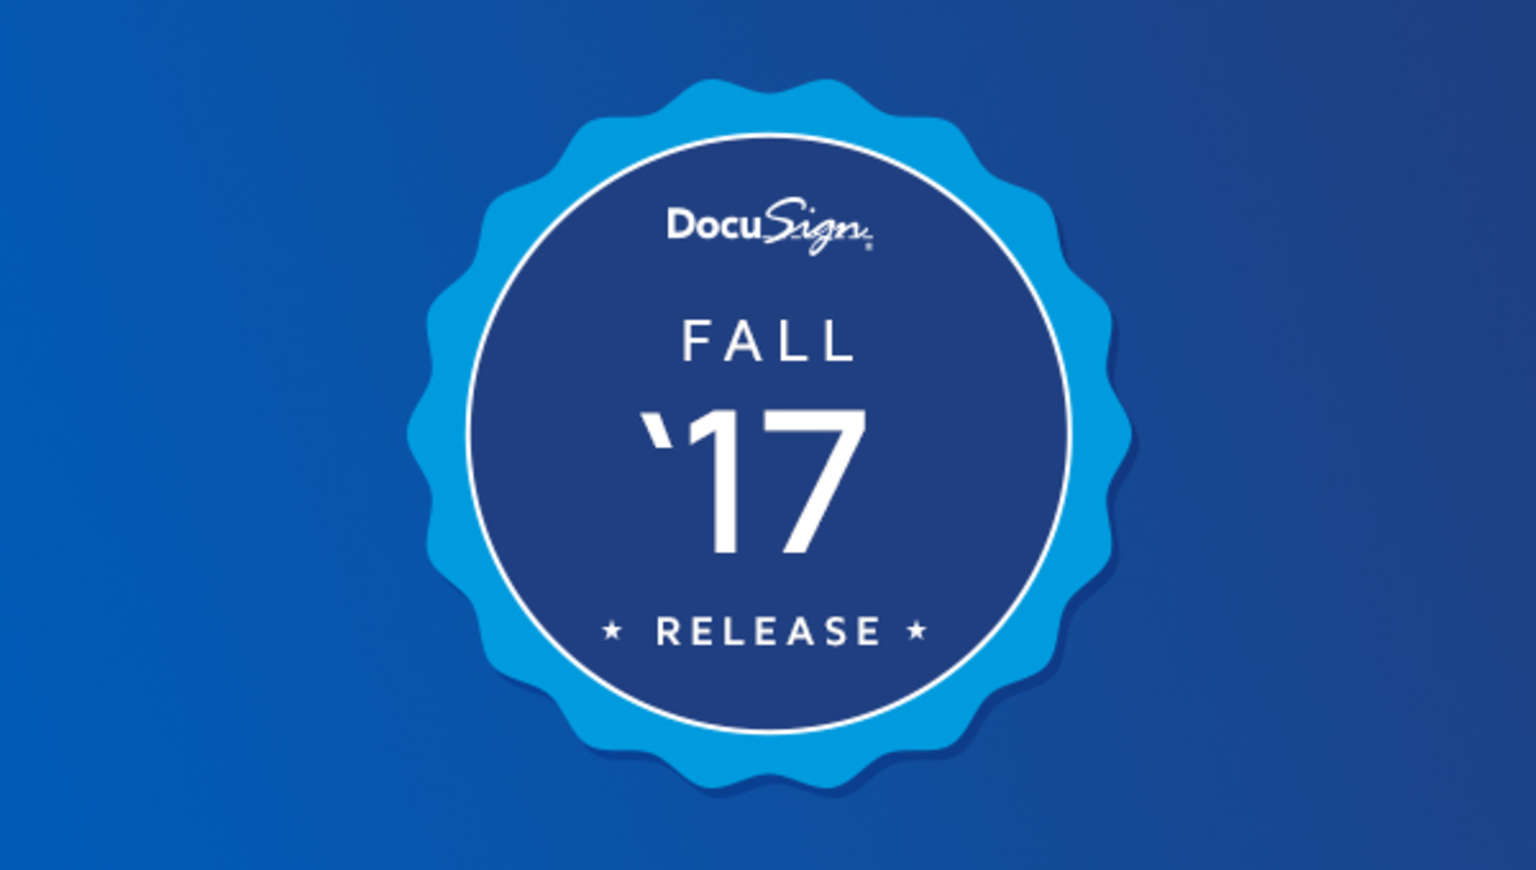 Experience the newest DocuSign features